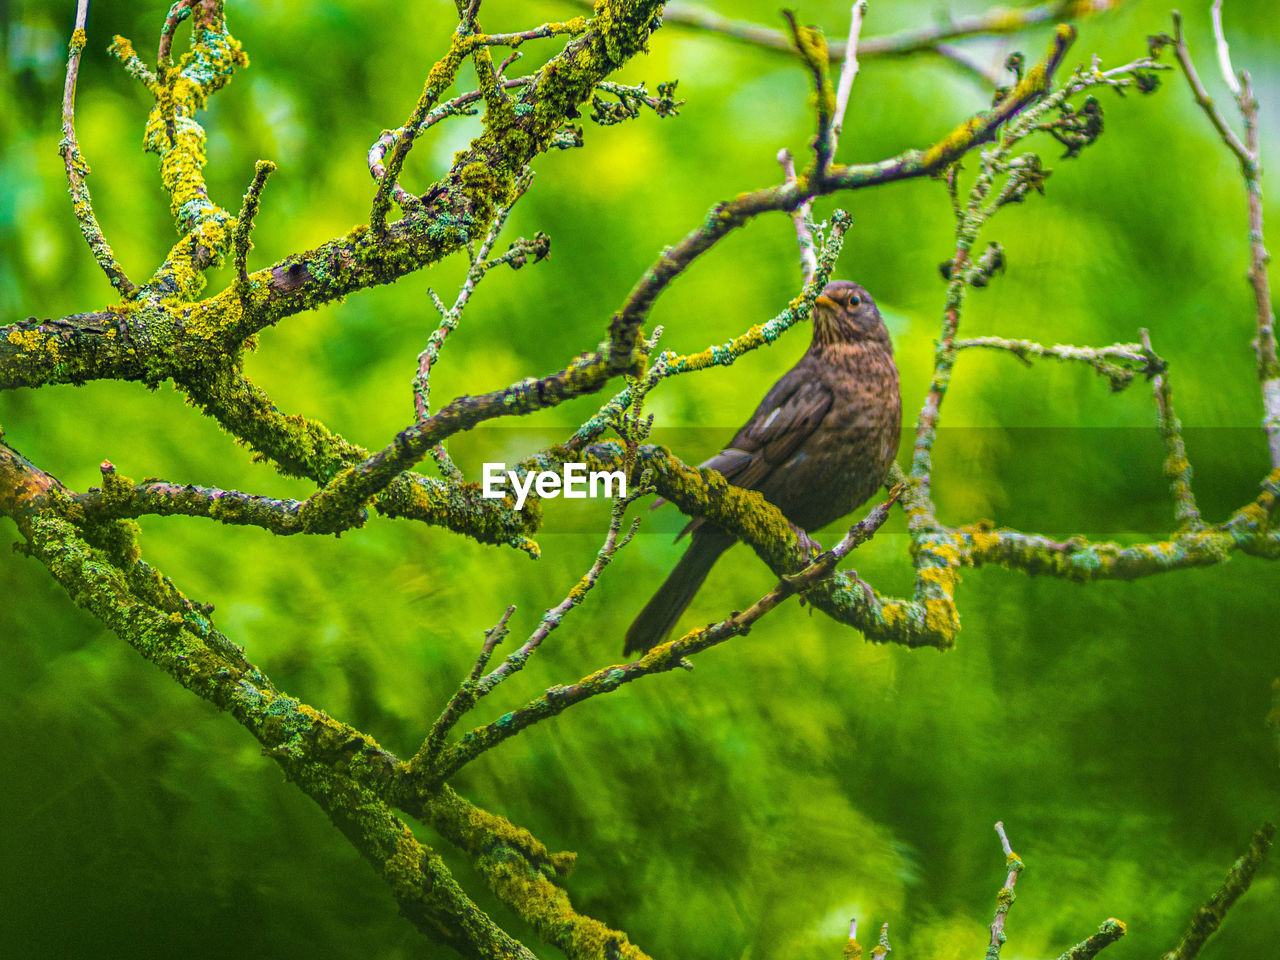 animals in the wild, animal themes, animal, animal wildlife, bird, vertebrate, perching, one animal, plant, green color, tree, branch, no people, nature, day, focus on foreground, outdoors, selective focus, close-up, growth